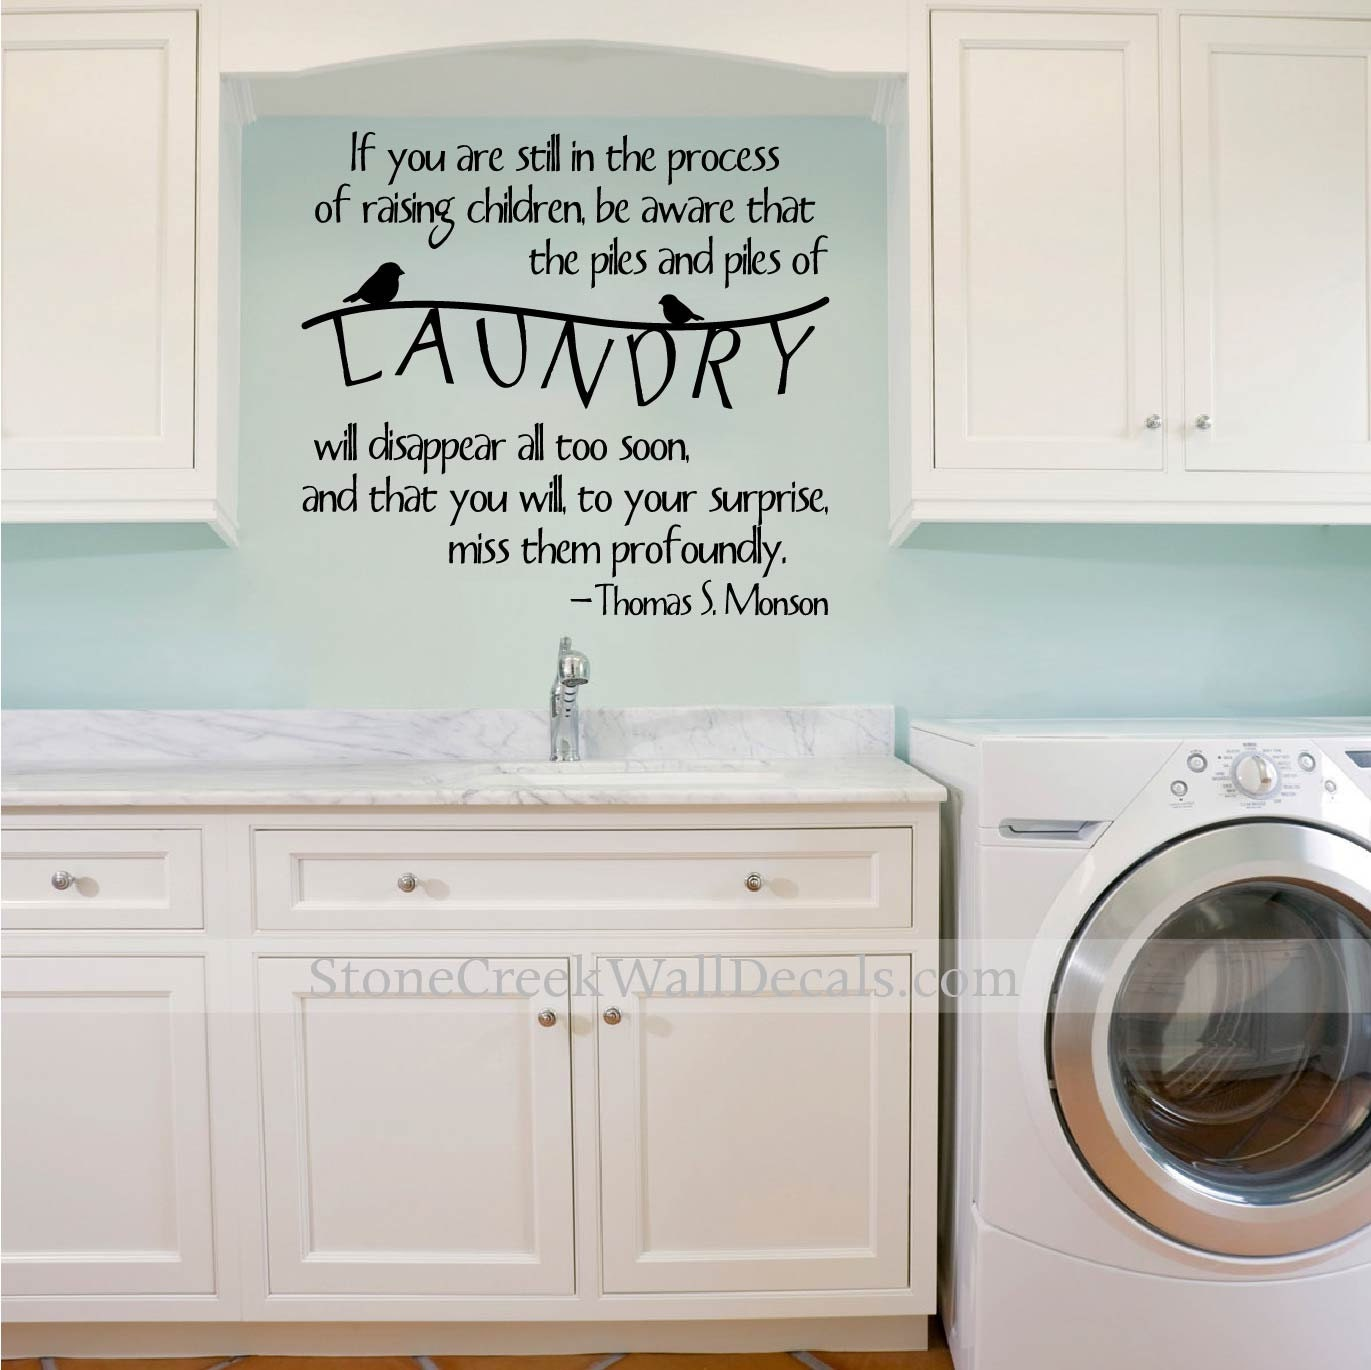 Laundry Room Wall Decals   Laundry Room Decals   Laundry Room Wall Decor   Laundry  Wall Decals   Laundry Signs   Laundry Room Signs   Decals